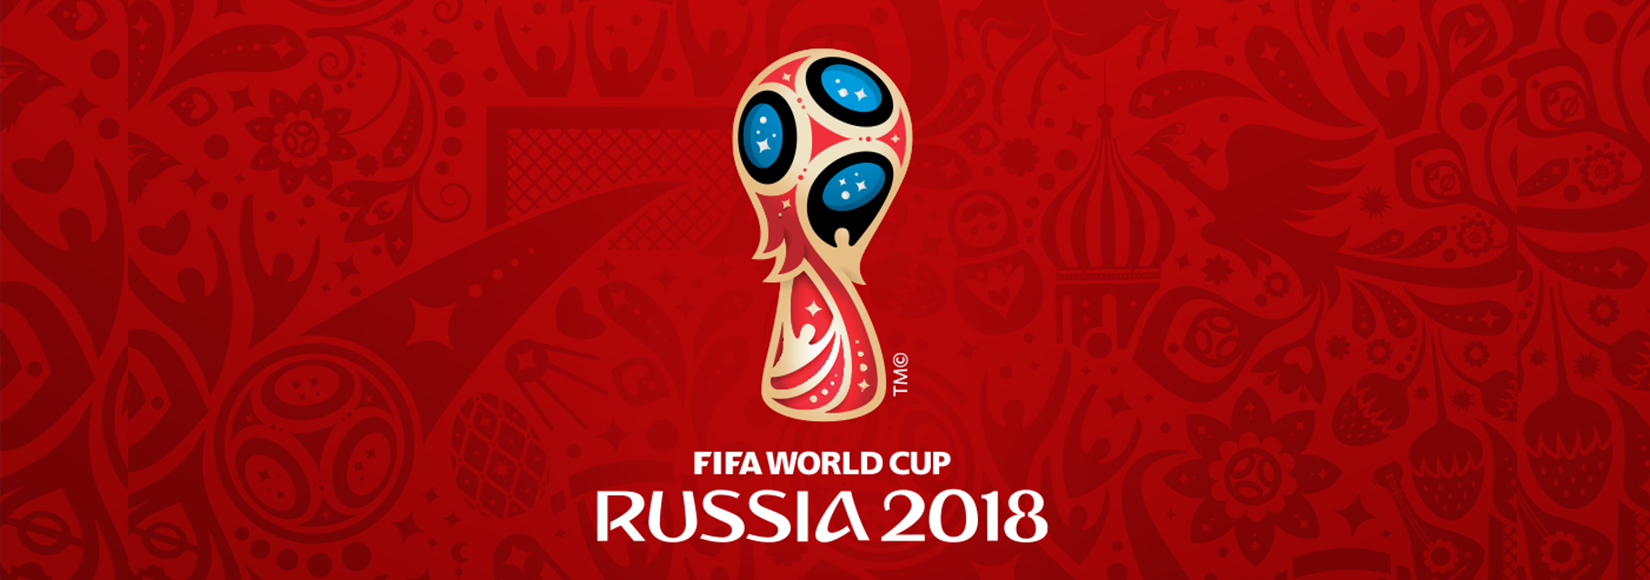 logo-2018-FIFA-World-Cup-Russia-banner-1650x580.png